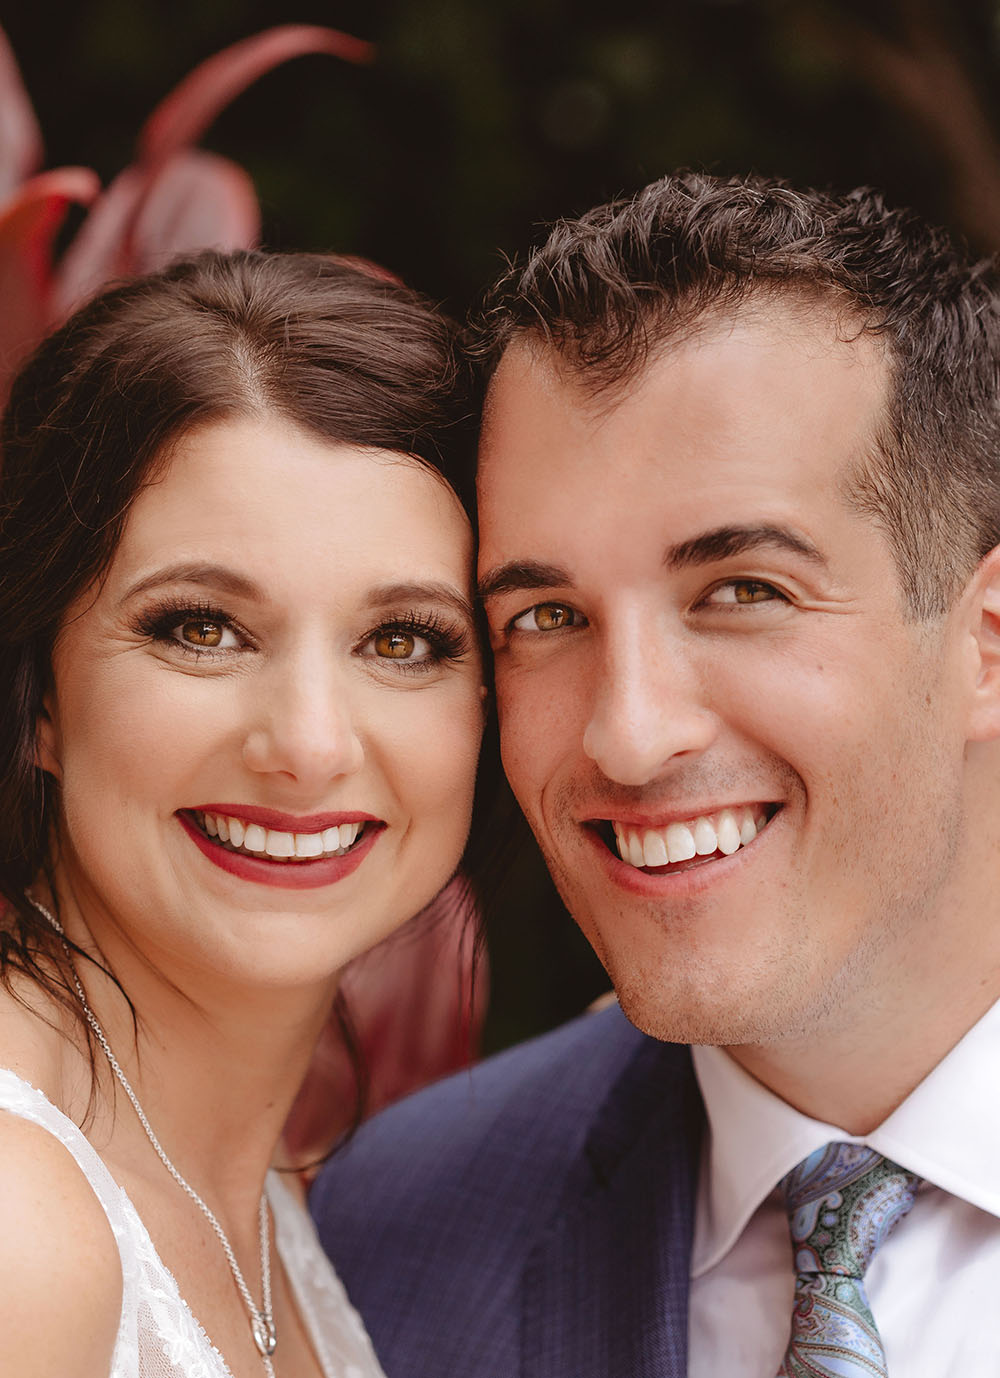 Naples Wedding Photographer, close up of bride and grooms faces